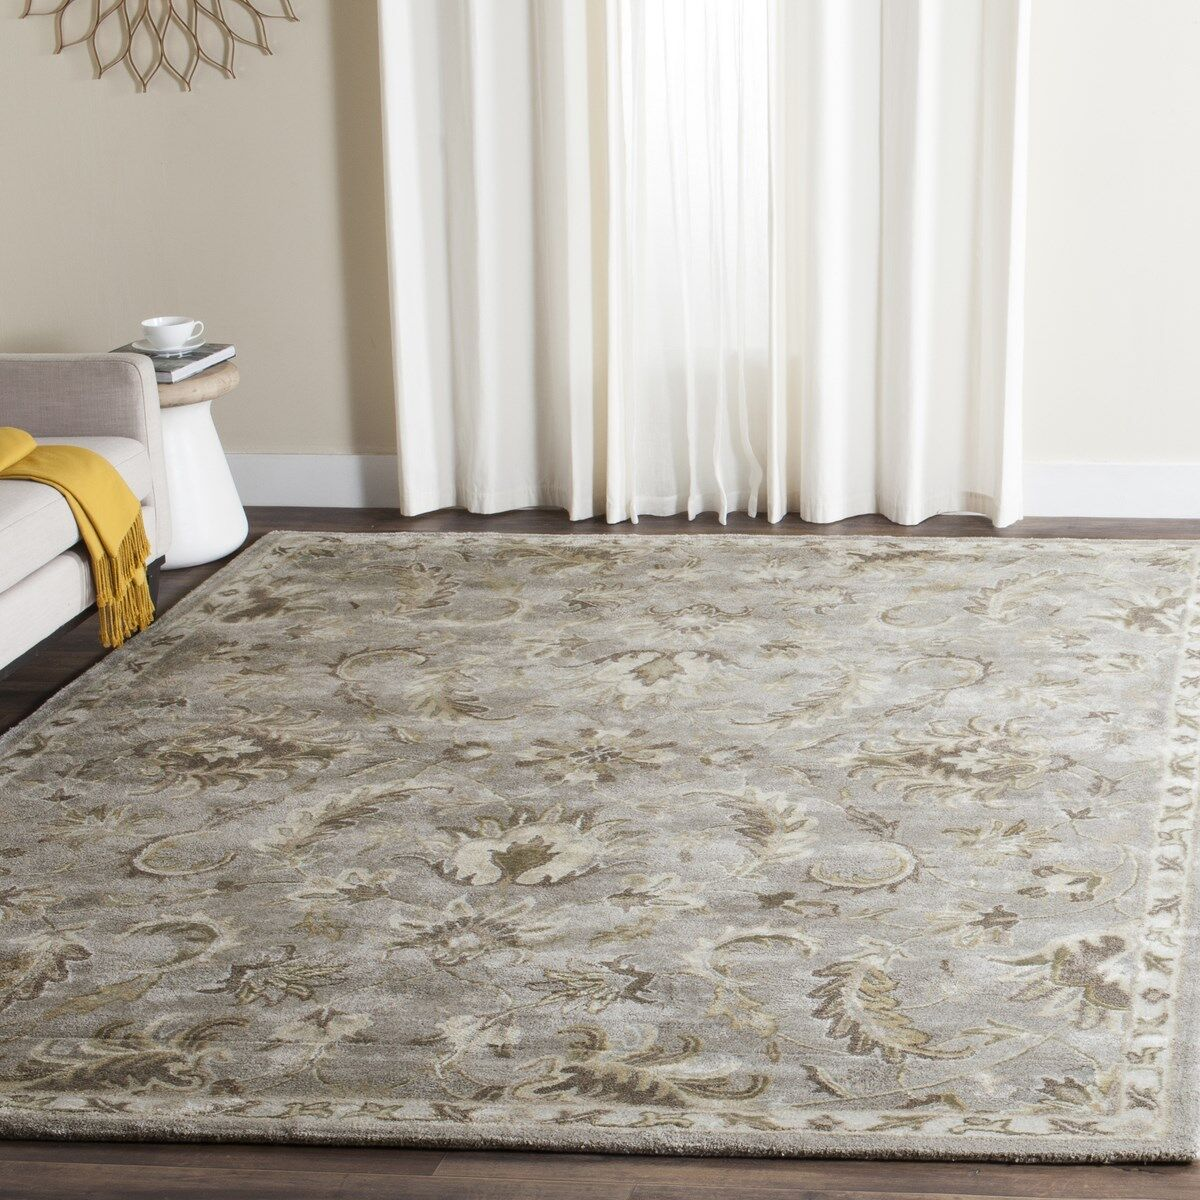 Amundson Hand Tufted Light Gray Area Rug Rug Size: Rectangle 6' x 9'